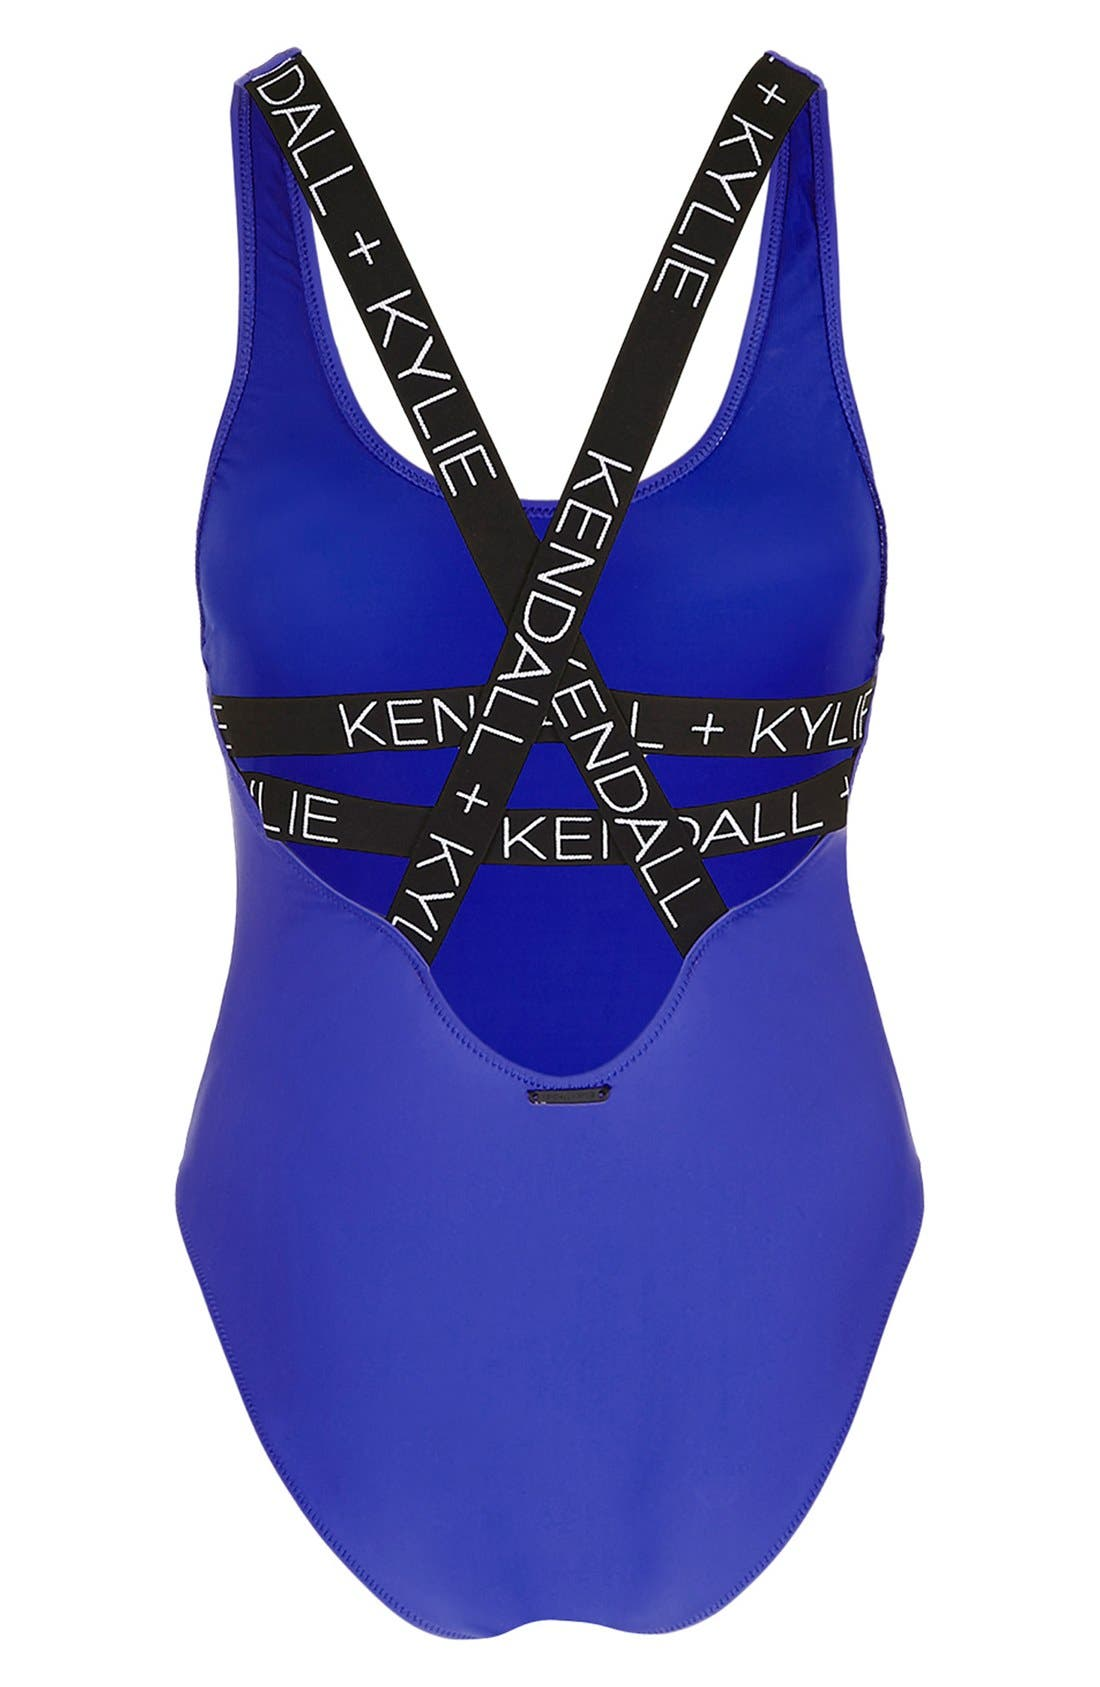 KENDALL + KYLIE at Topshop Elastic Strap One-Piece Swimsuit,                             Alternate thumbnail 6, color,                             430